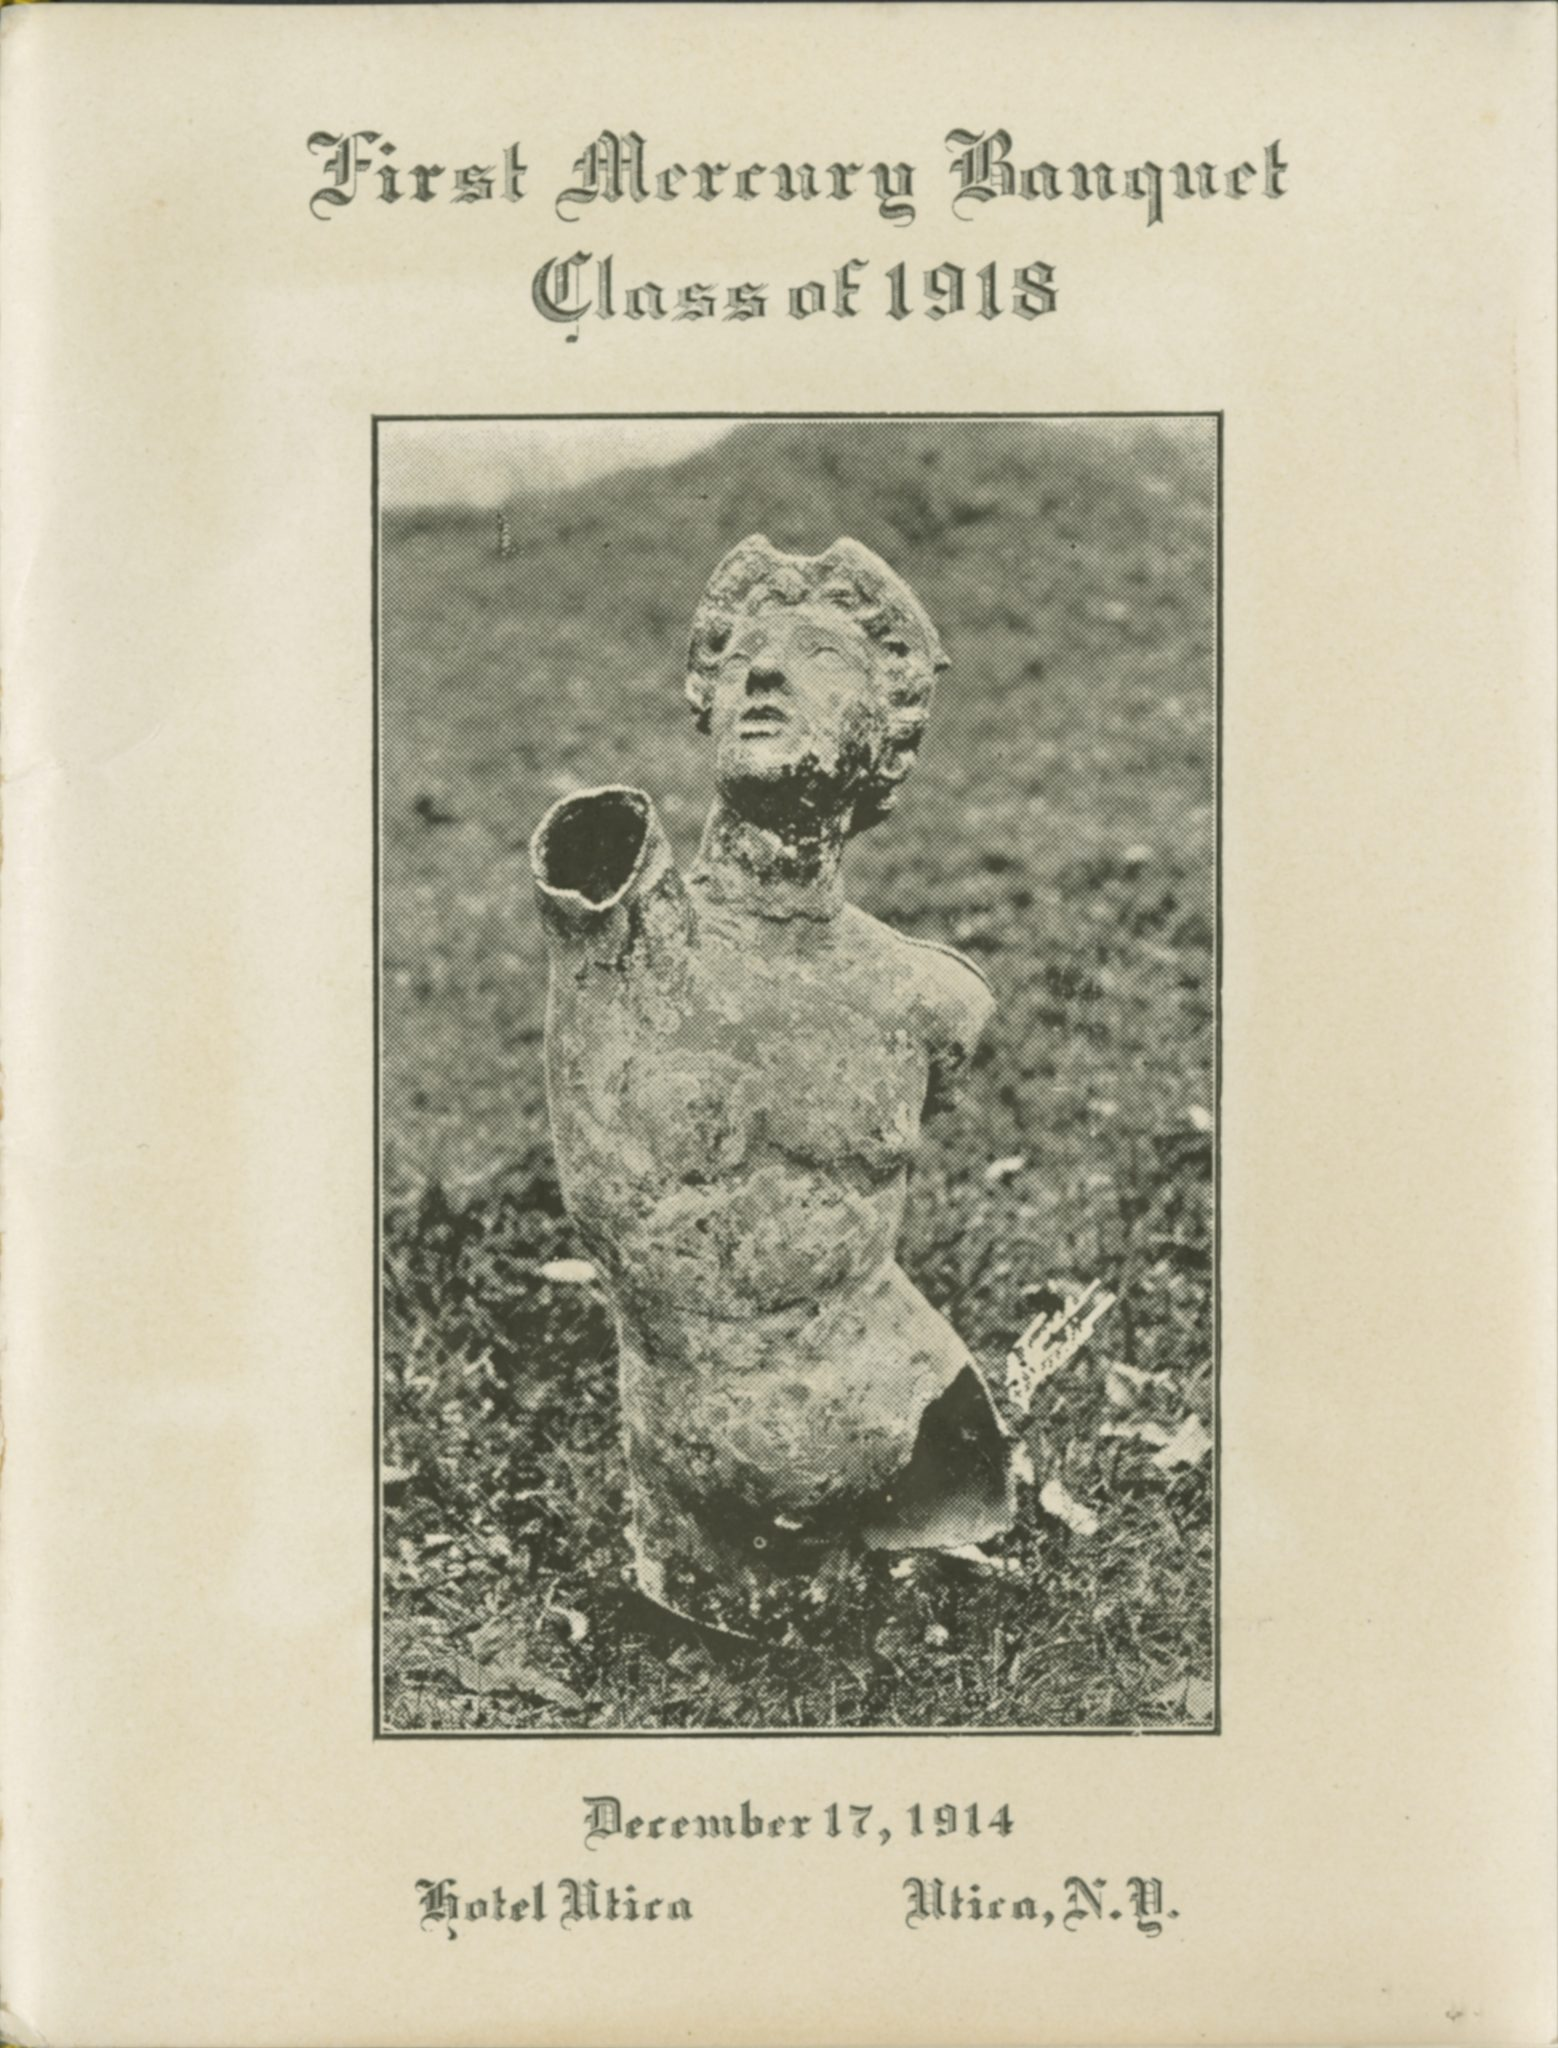 <p>Photograph of Mercury from</p><p>Class of 1918 First Mercury Banquet program, 1914.</p><p>Mercury Collection.</p><p>Special Collections and University Archives,</p><p>Colgate University Libraries.</p>